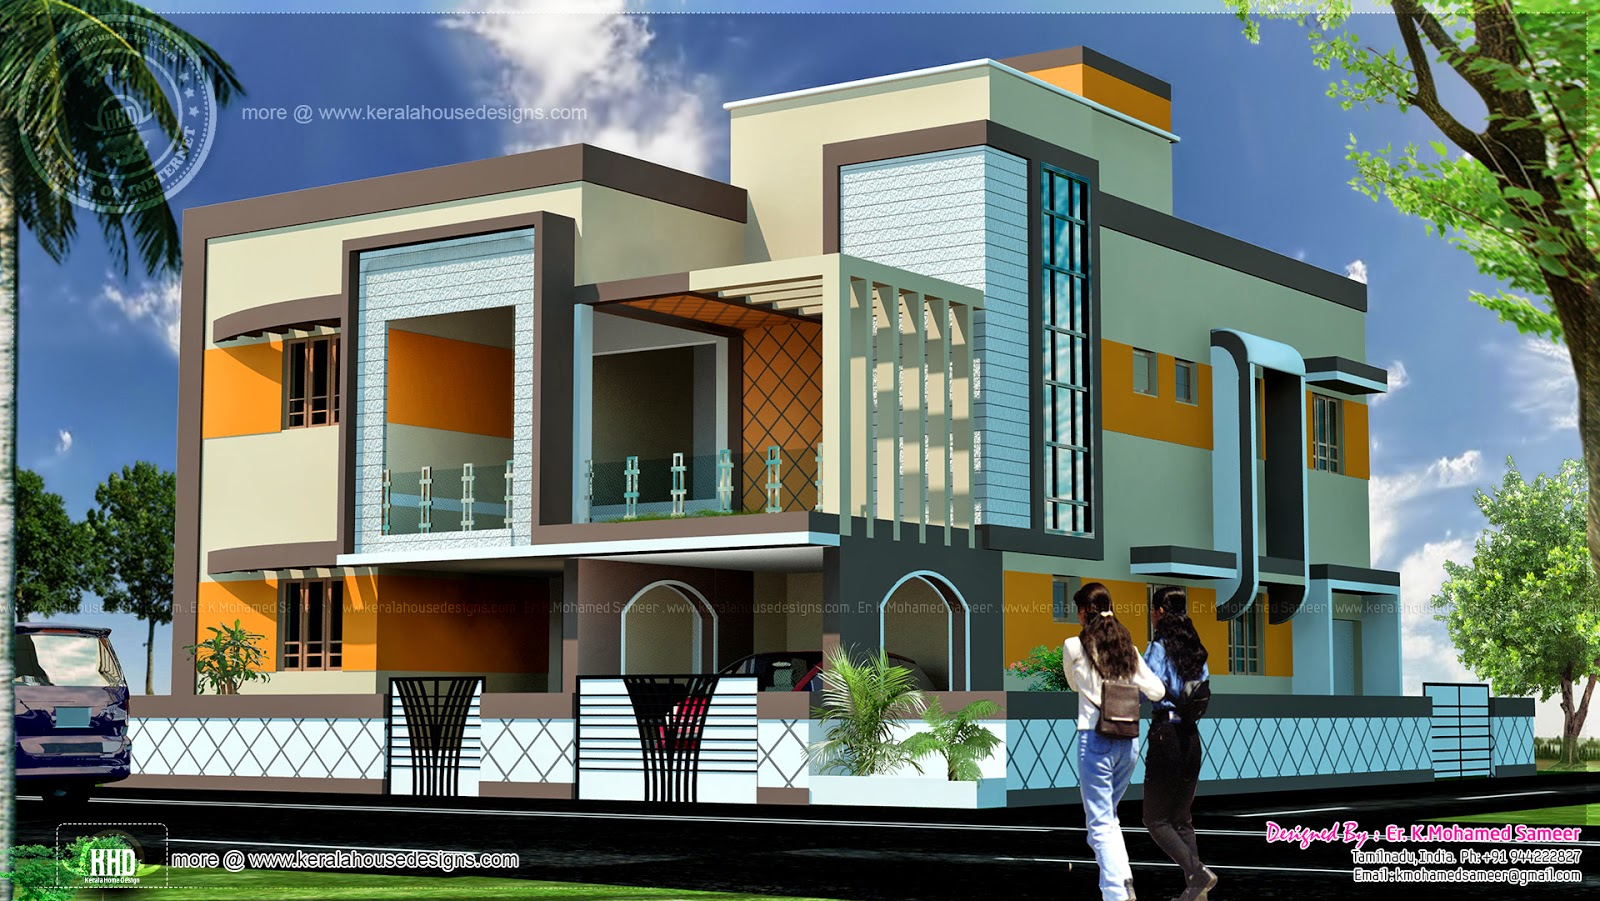 Tamilnadu house plans 1800 square feet house design plans for Tamilnadu house designs photos